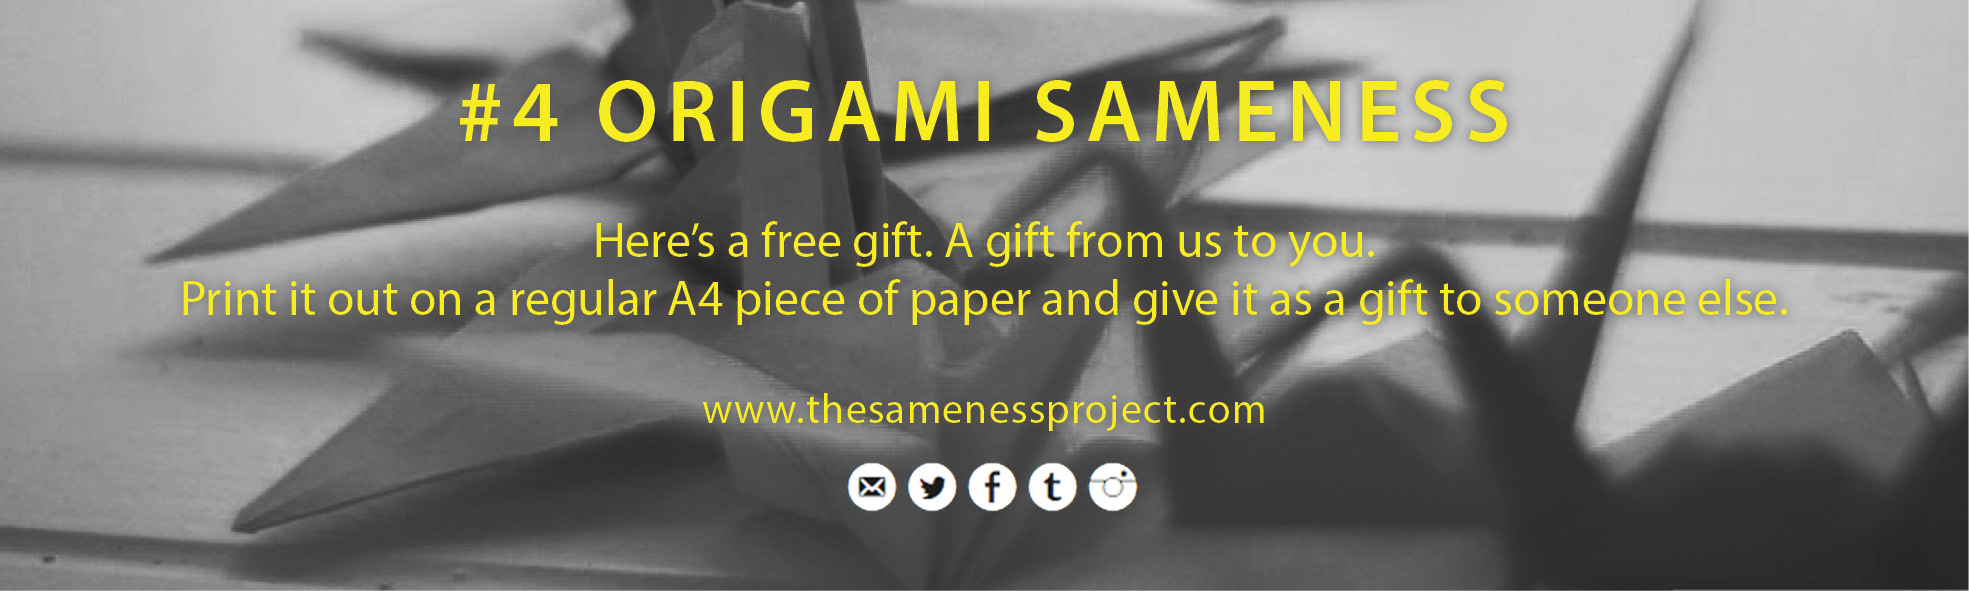 Origami Sameness - Here's a free gift. A gift from us to you. Print it out on a regular A4 piece of paper and give it as a gift to someone else.